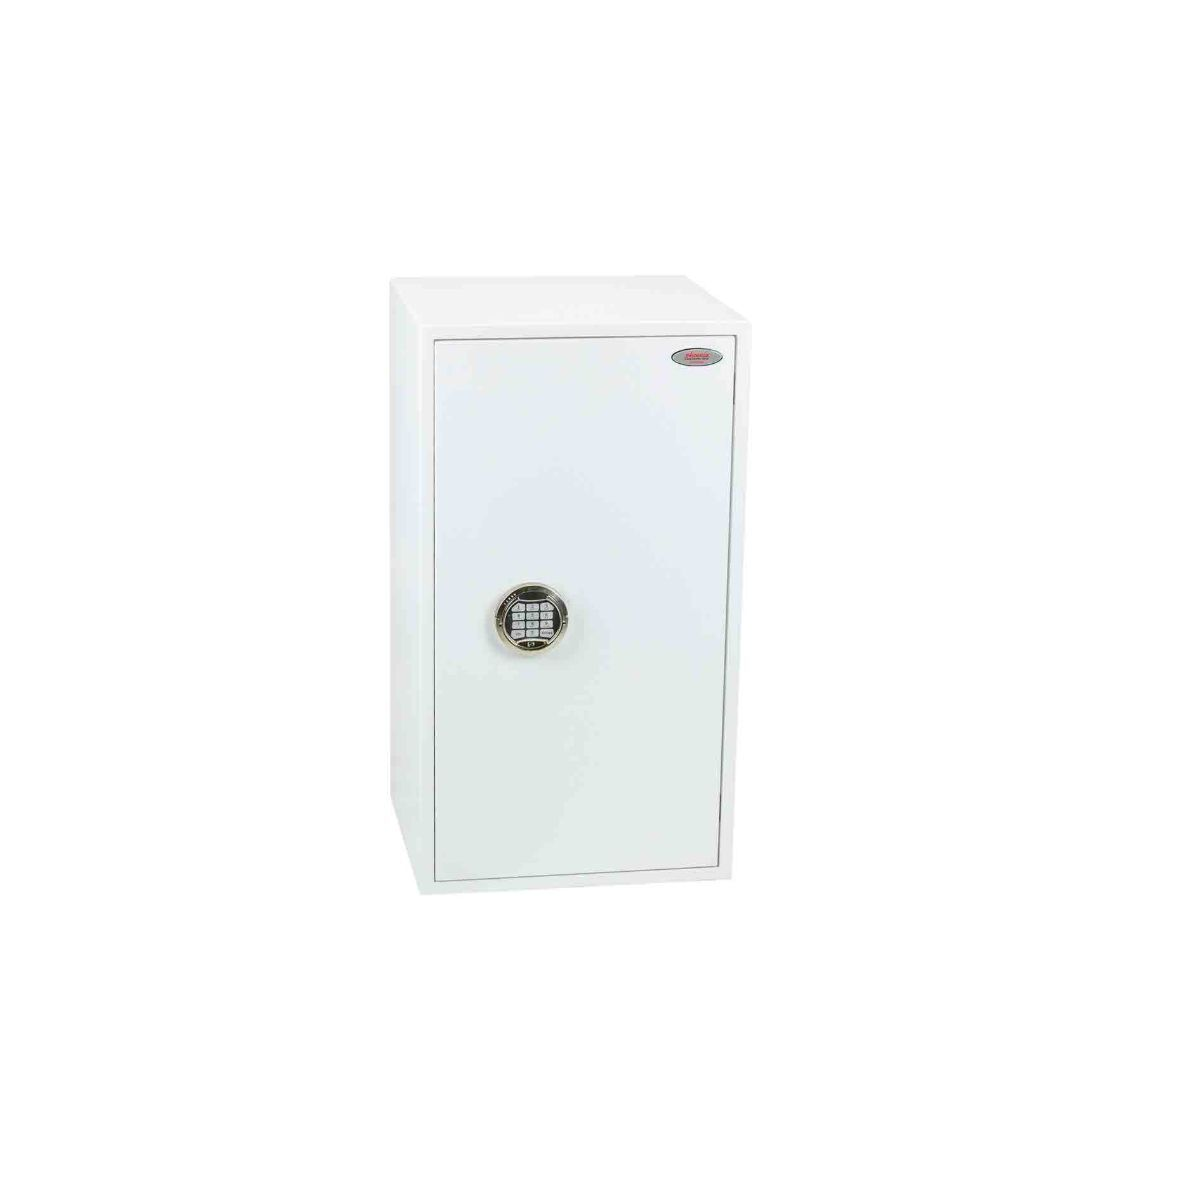 Phoenix Fortress S2 Security Safe with Electronic Lock Size 4